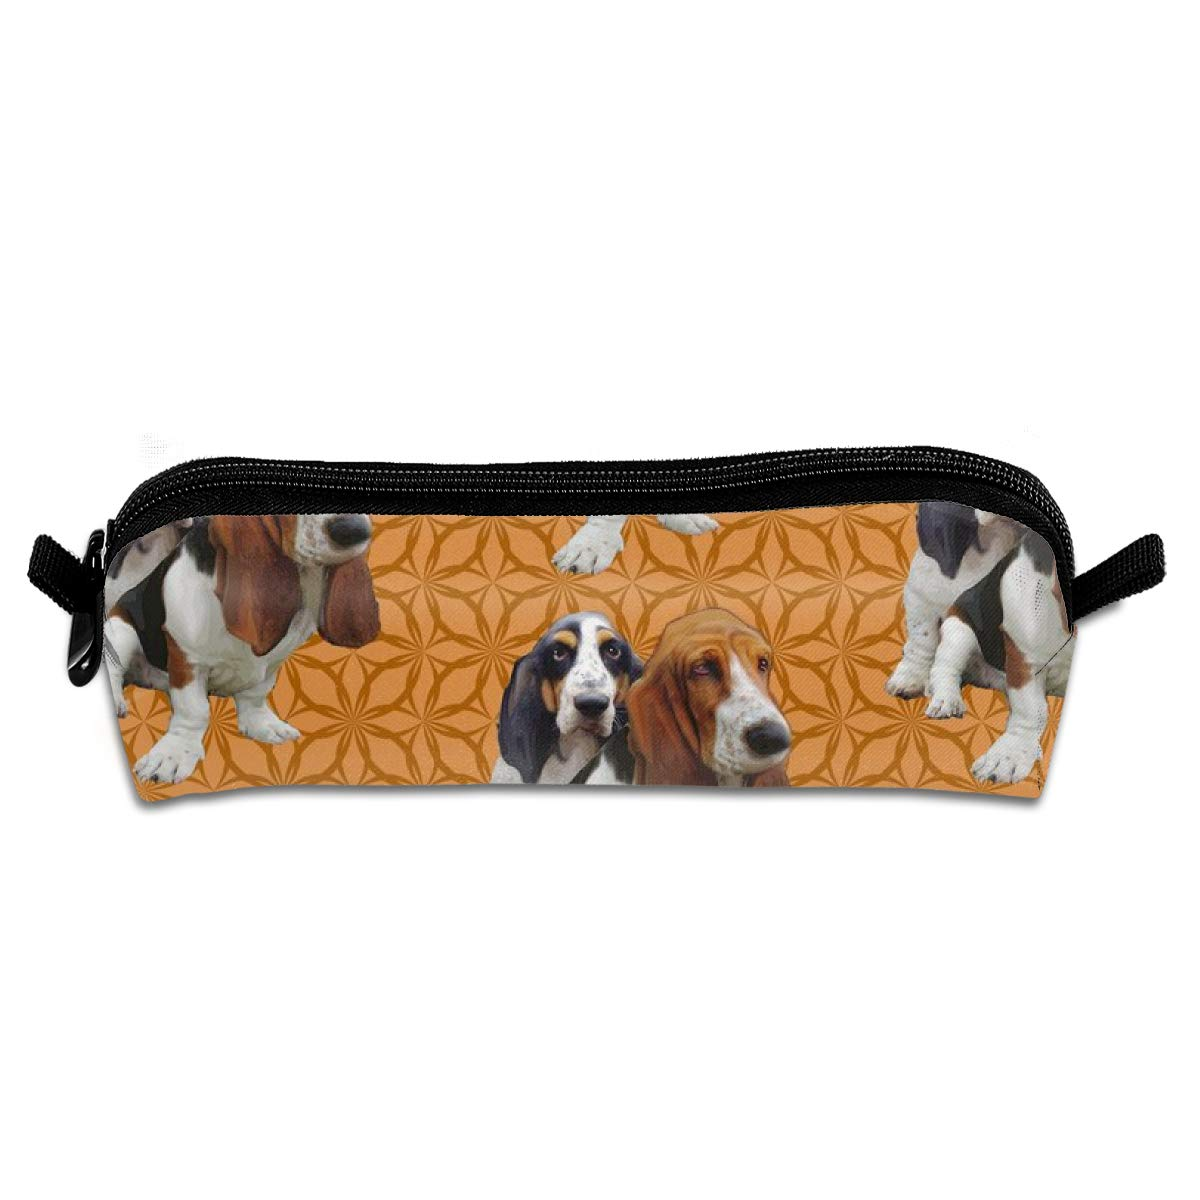 Basset Hounds Two Student Polyester Double Zipper Pen Box Boys Girls Pencil Case Cosmetic Makeup Bag Pouch Stationery Office School Supplies 21 X 5.5 X 5 cm